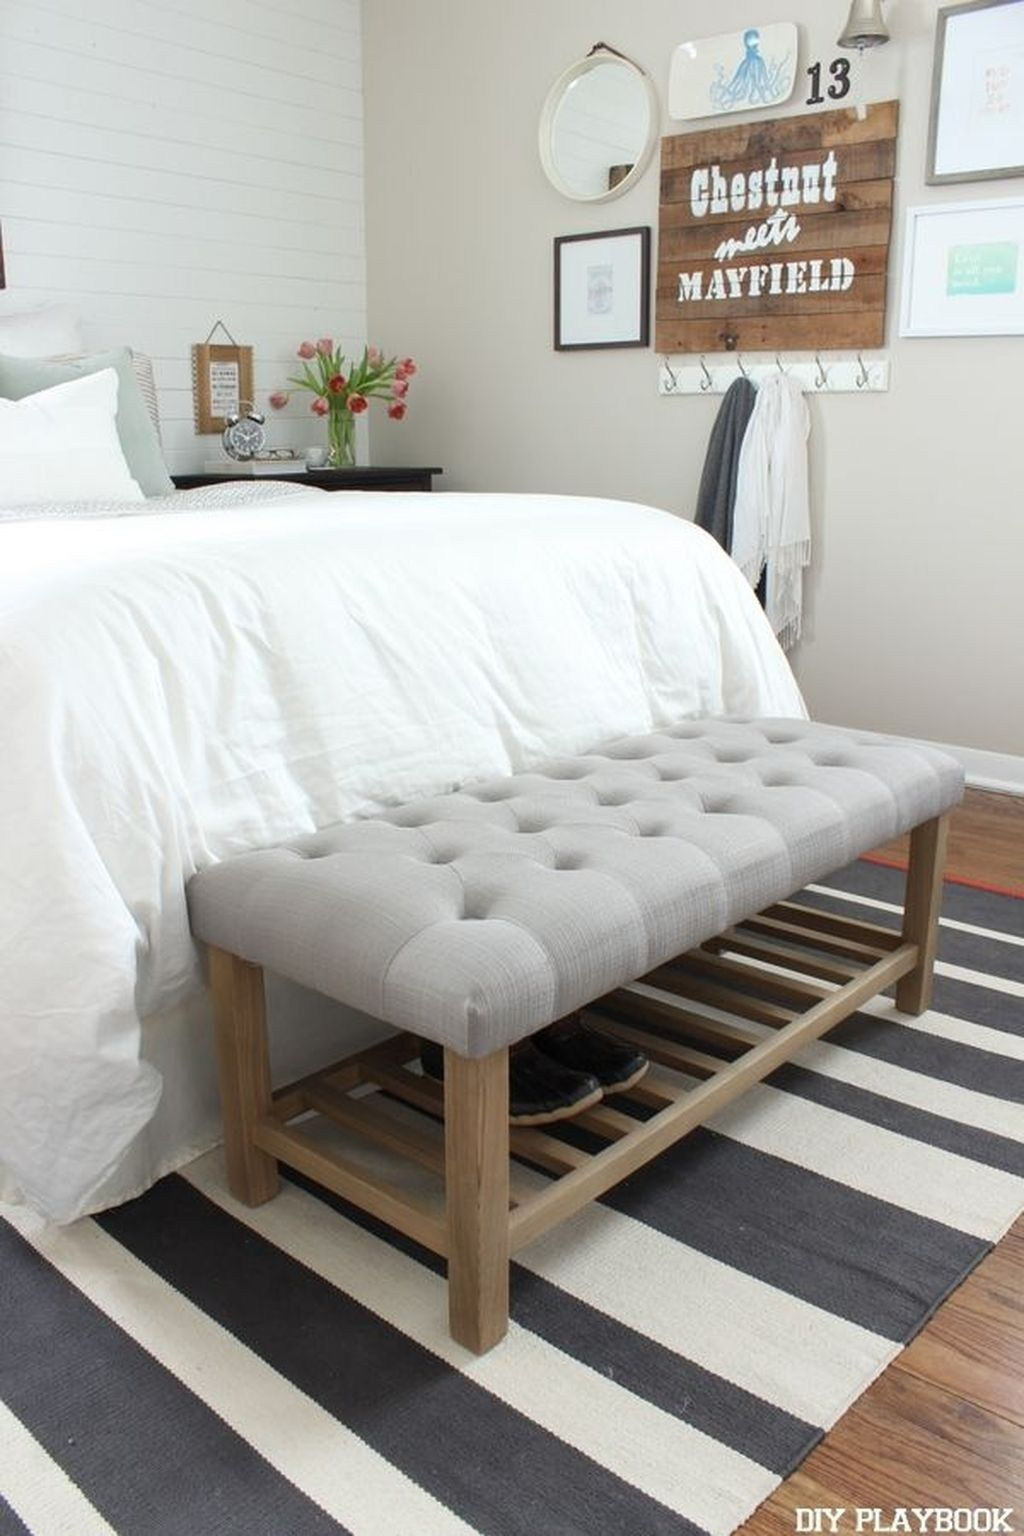 Gorgeous Diy Home Bench Project Ideas That You Love10 Homemade